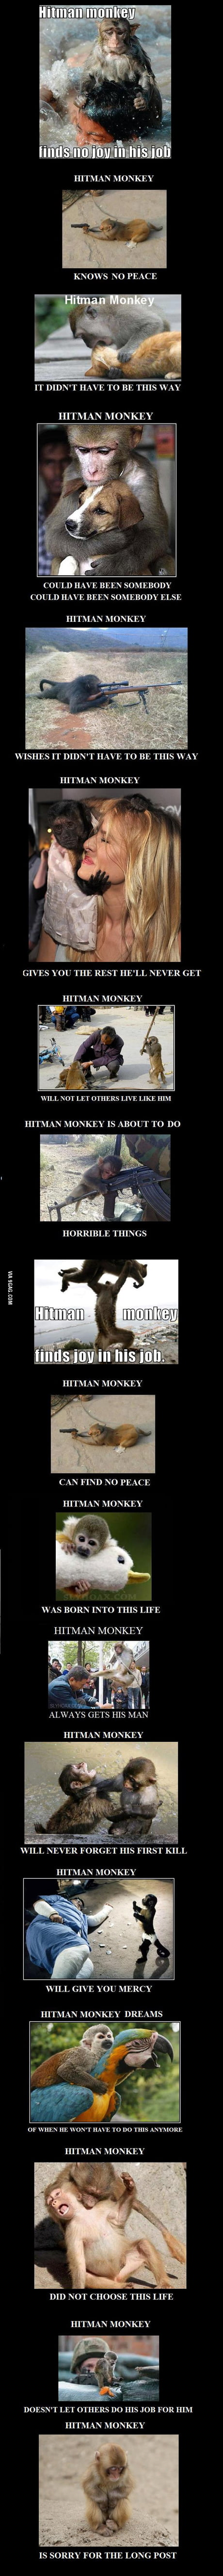 Hitman Monkey Finds No Joy In This Post 9gag